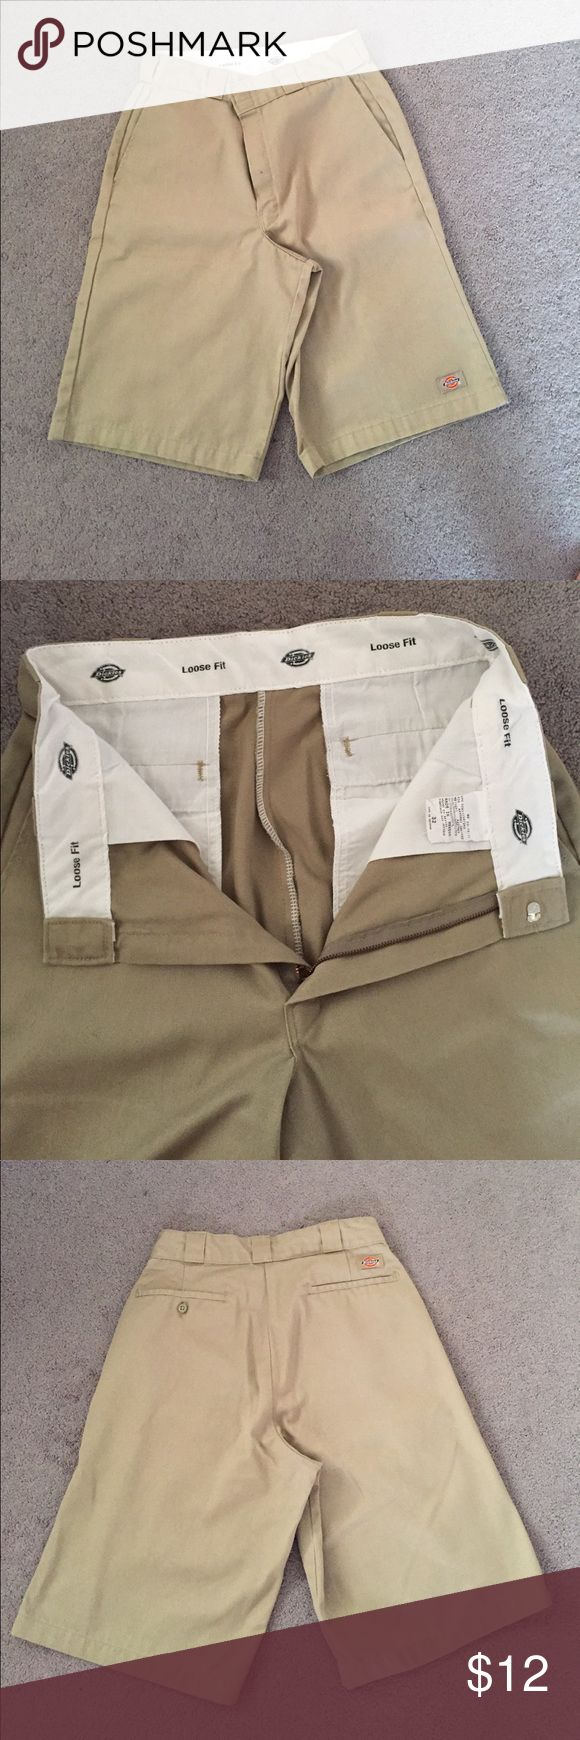 DICKIES mens khaki shorts Mens khaki shorts. Loose fit. Great condition. Worn only a few times. Dickies Shorts Flat Front